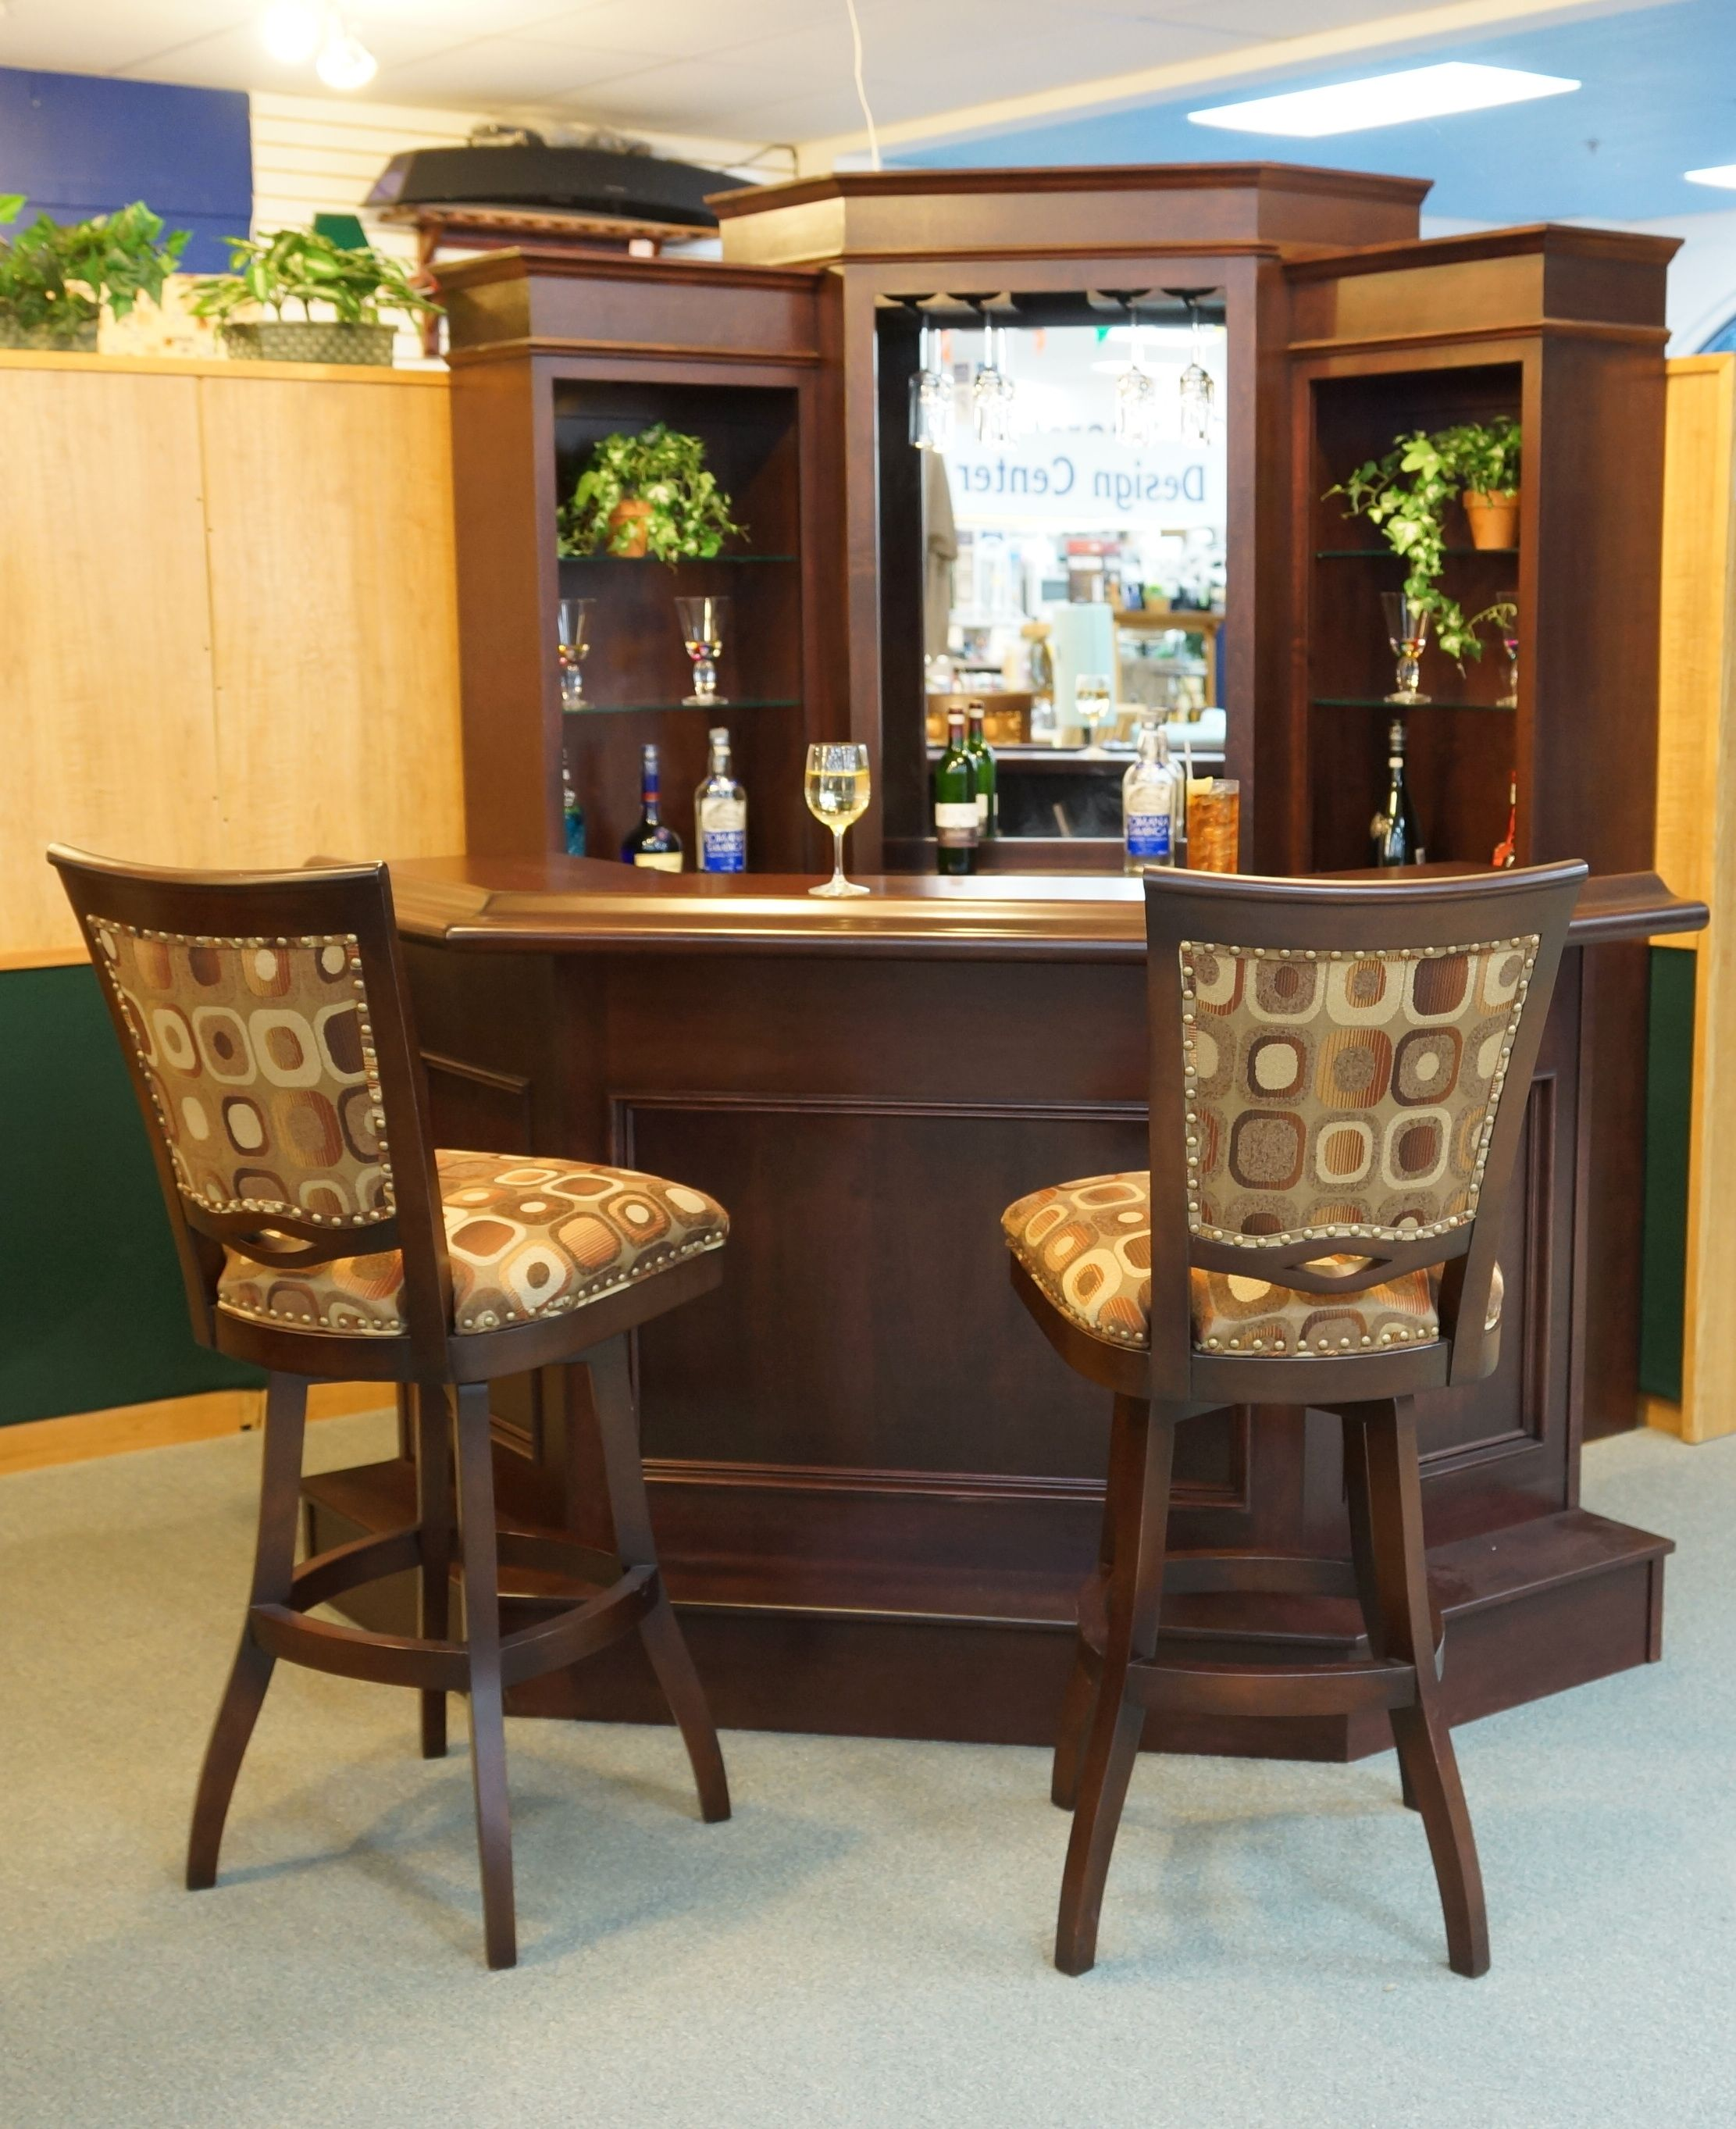 Nice Corner Bar By Primocraft With Barstools By Tobias Designs Part 3